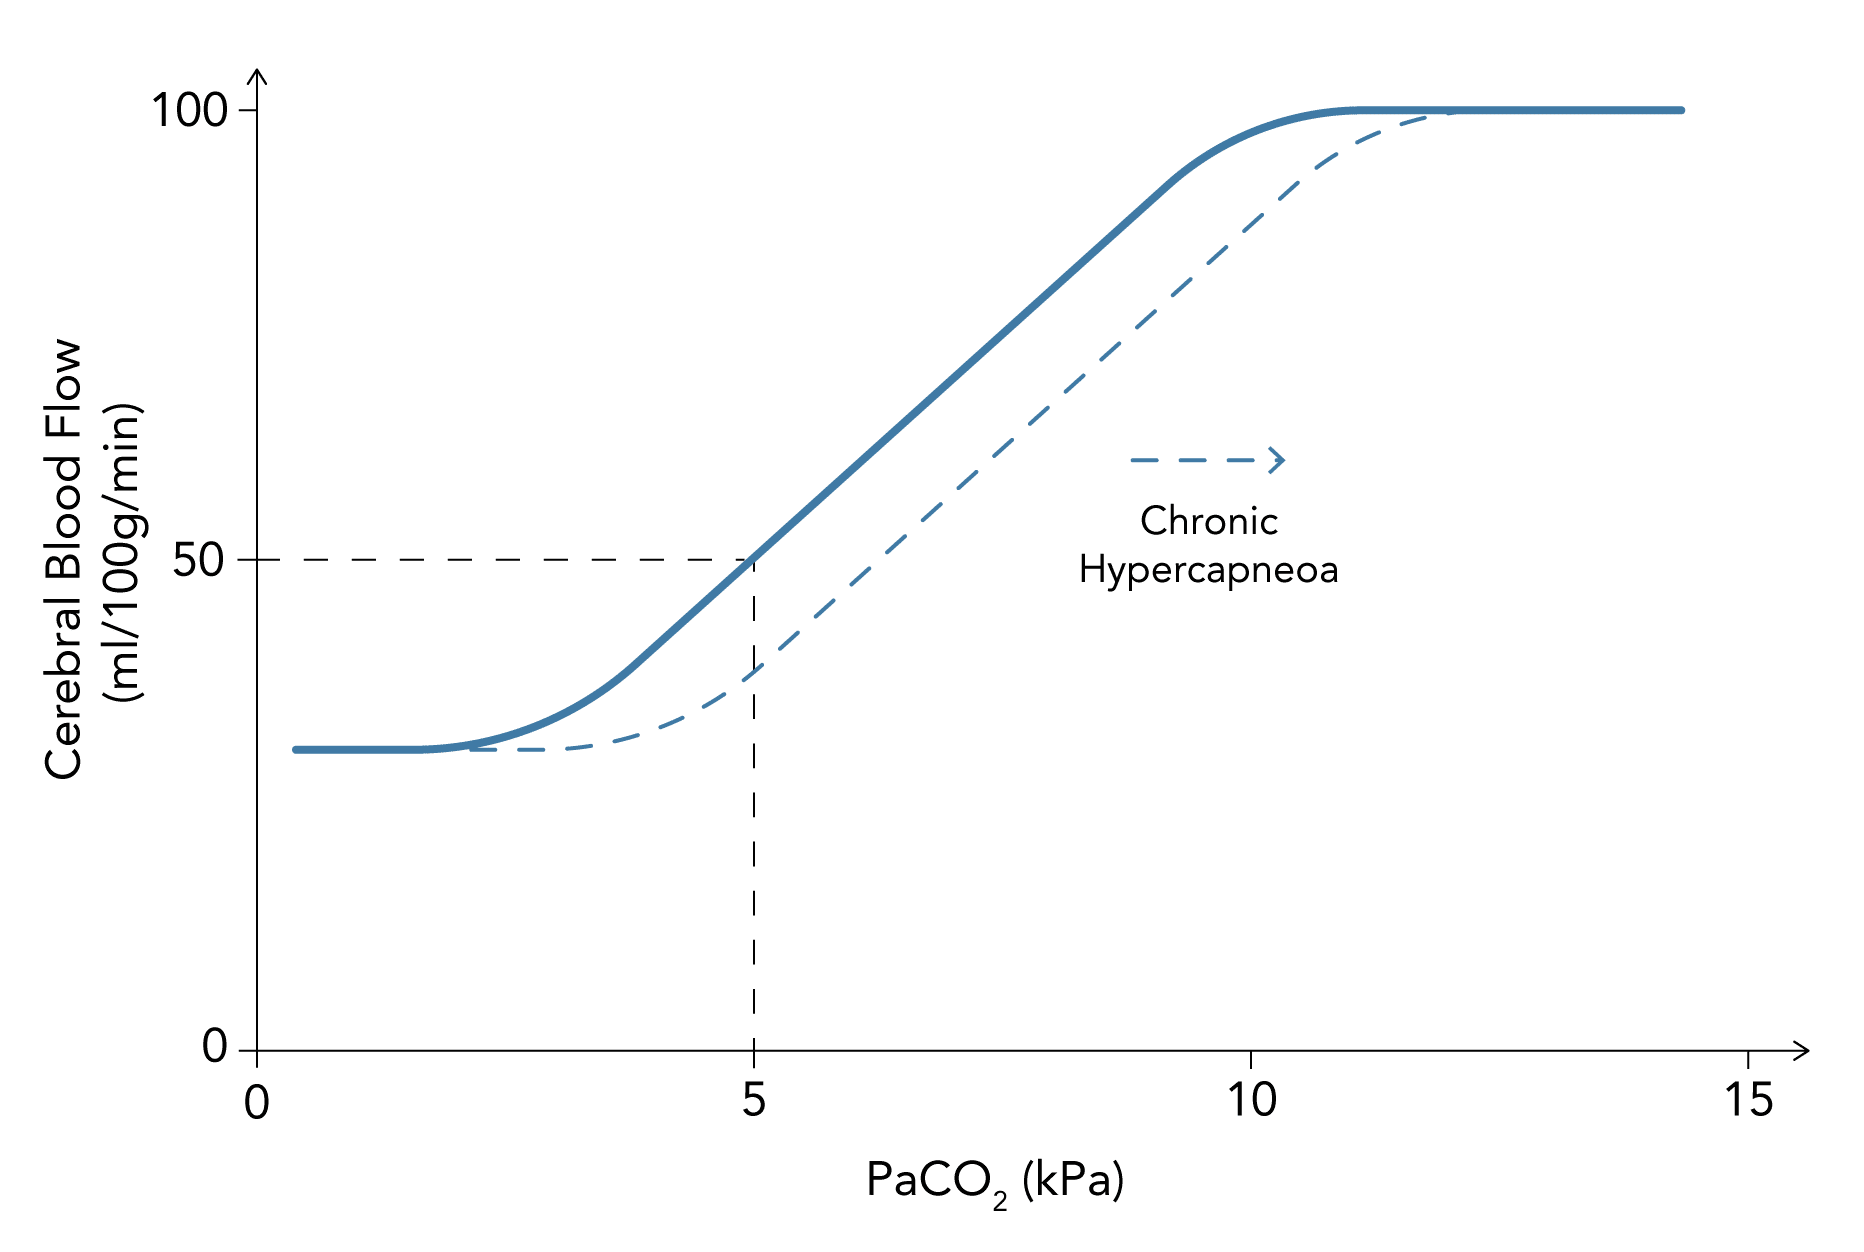 Relationship between PaCO2 (carbon dioxide) and cerebral blood flow